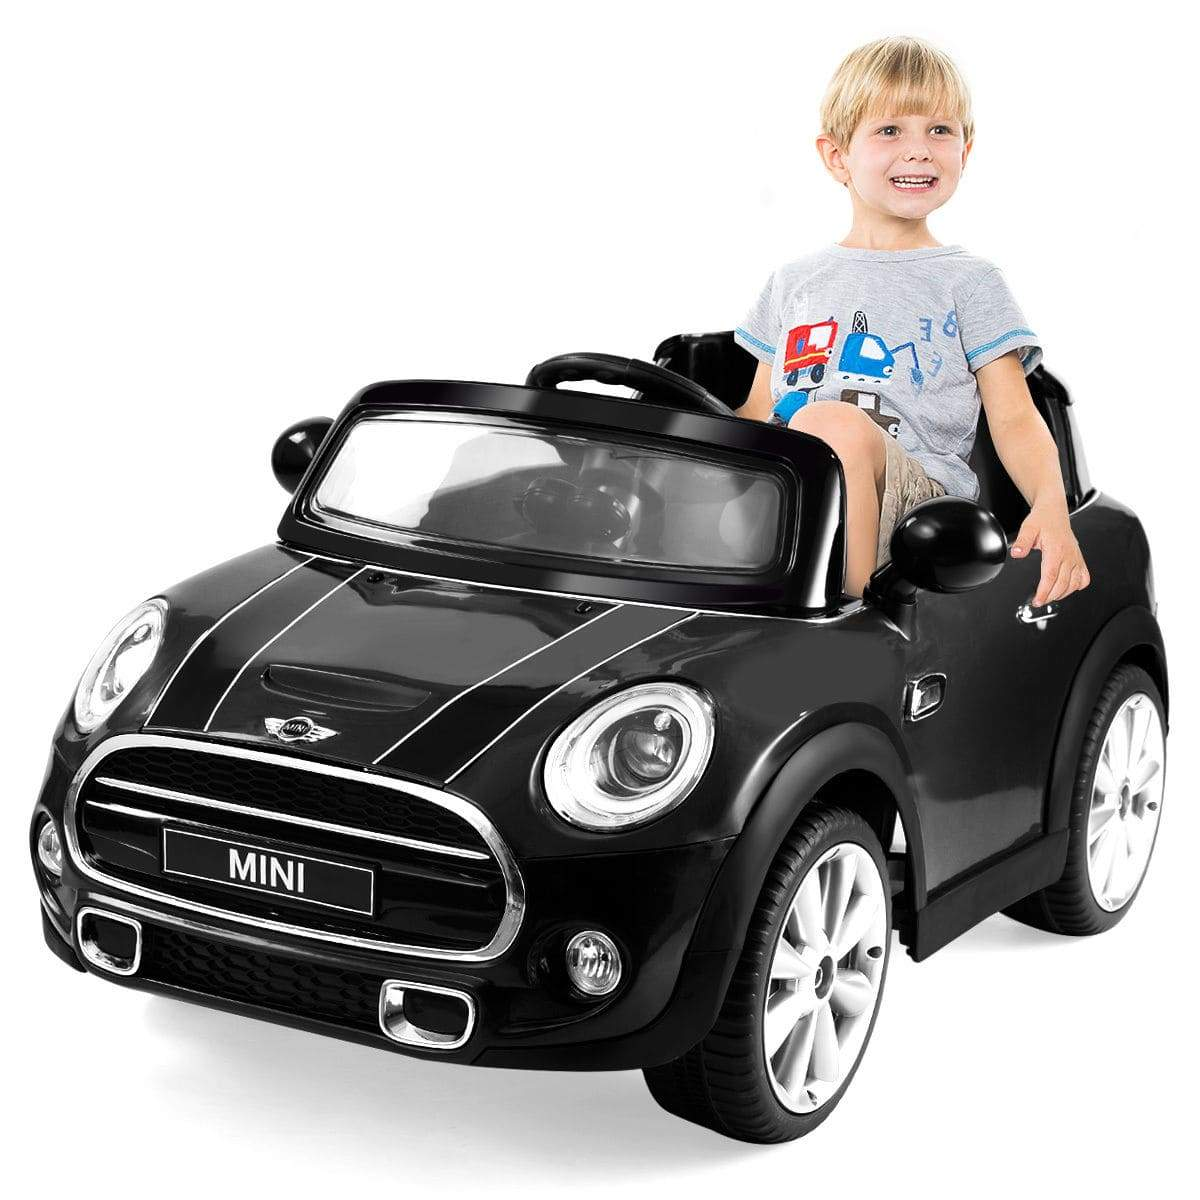 Mini Cooper Hatchback Licensed 12V Electric Kids Ride on Car with MP3 and Remote Control | BLACK - FREE SHIPPING Cars & SUVs Costway